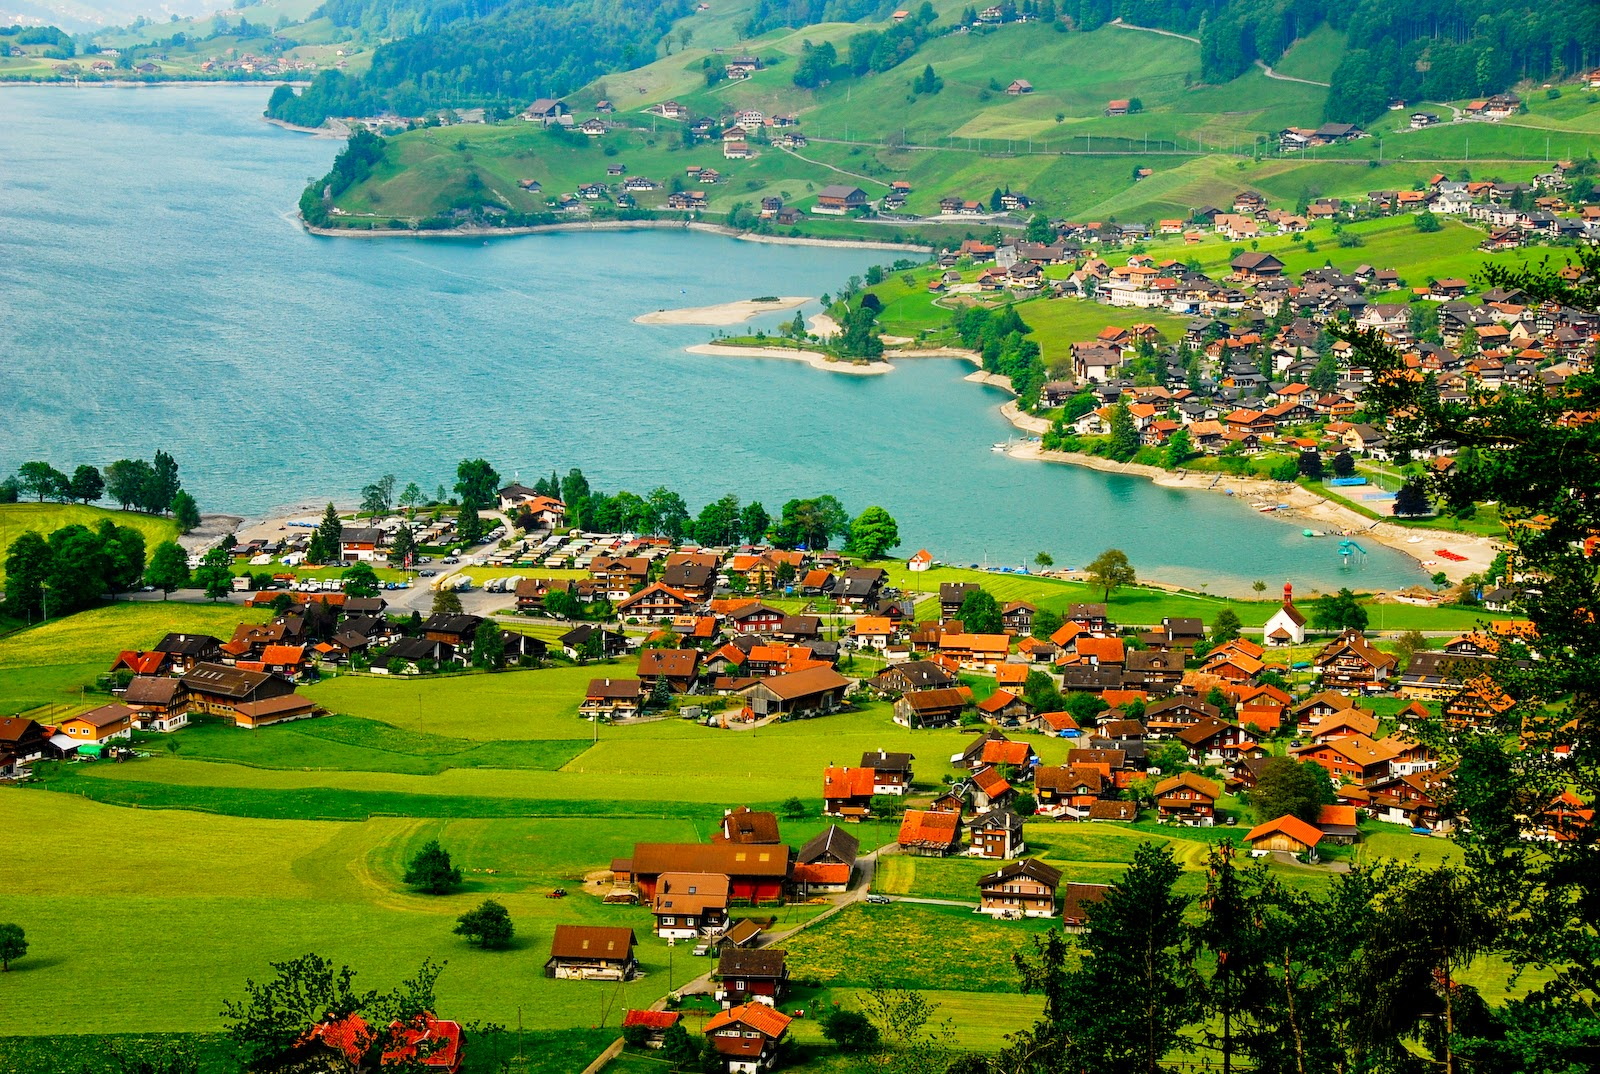 beautiful scenery in switzerland | most beautiful places in the